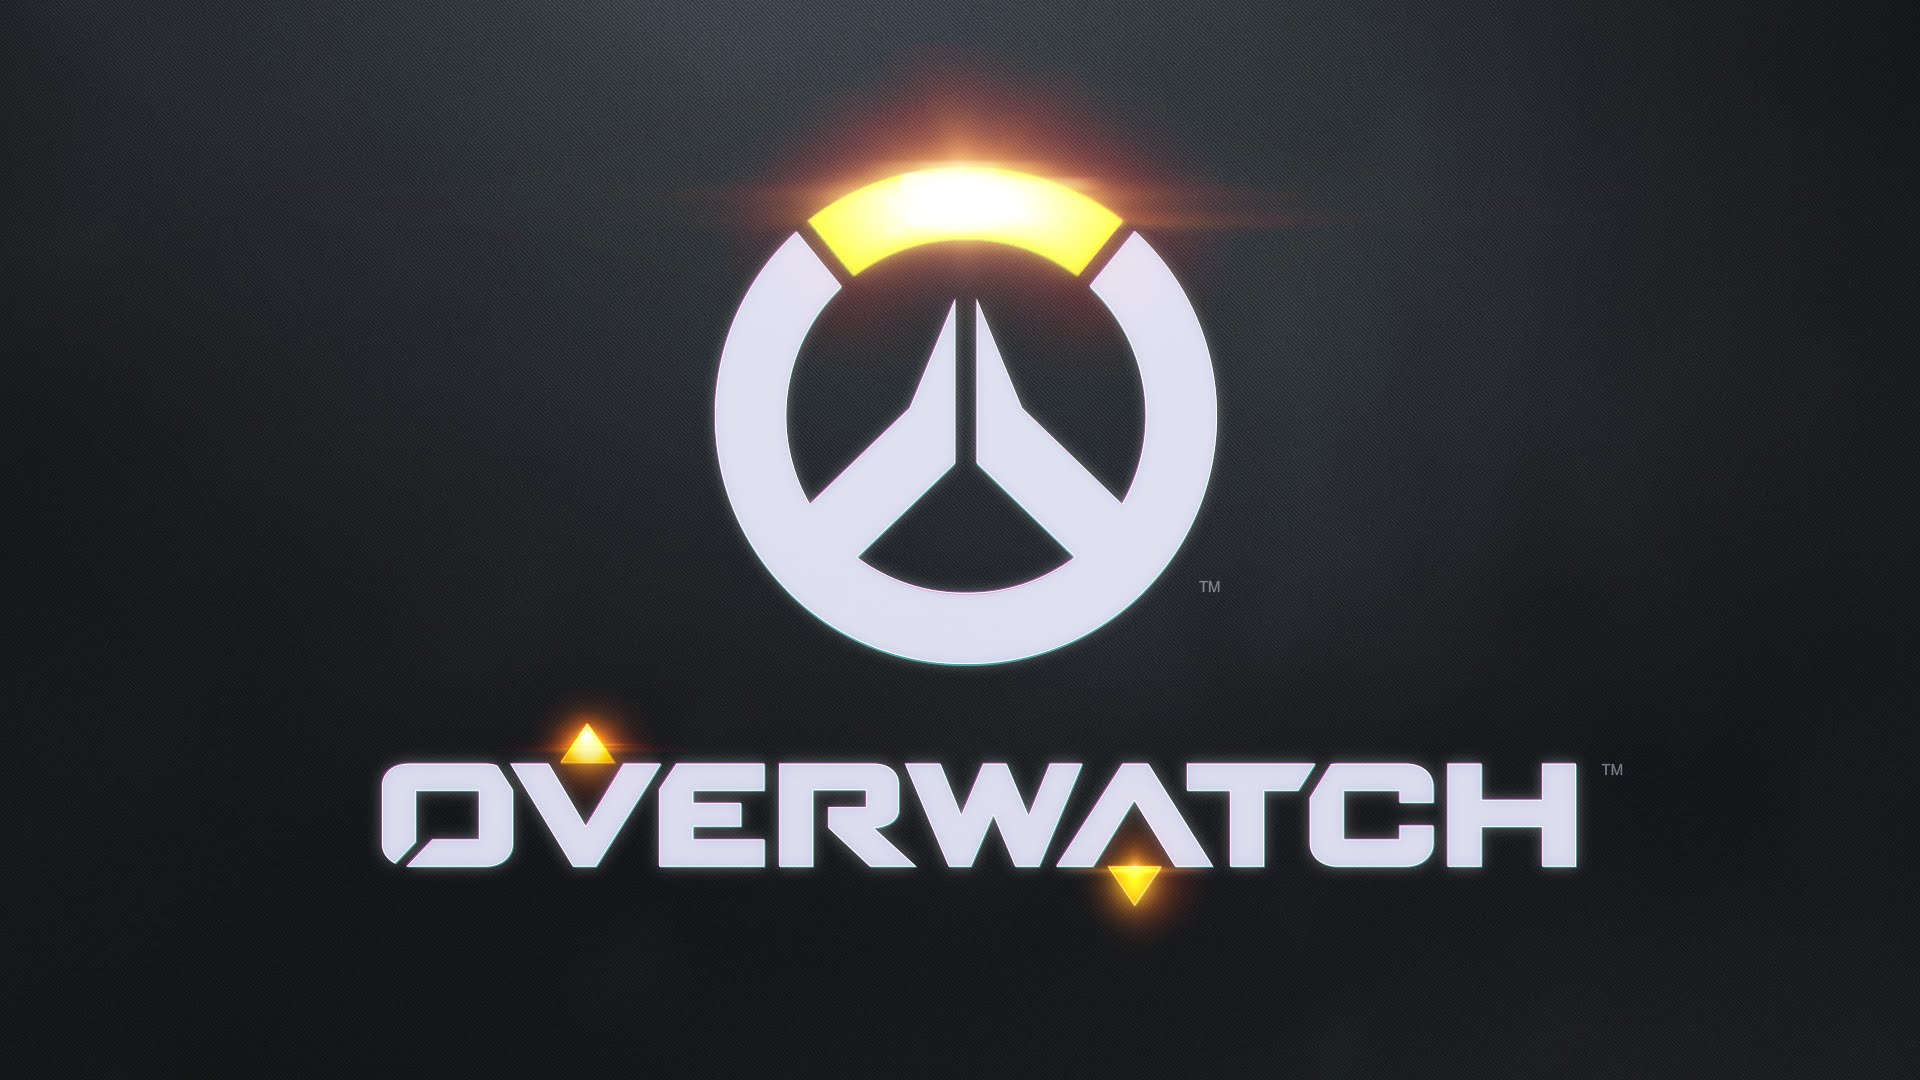 Overwatch – Watch The Gameplay Of All Of The Announced Characters So Far